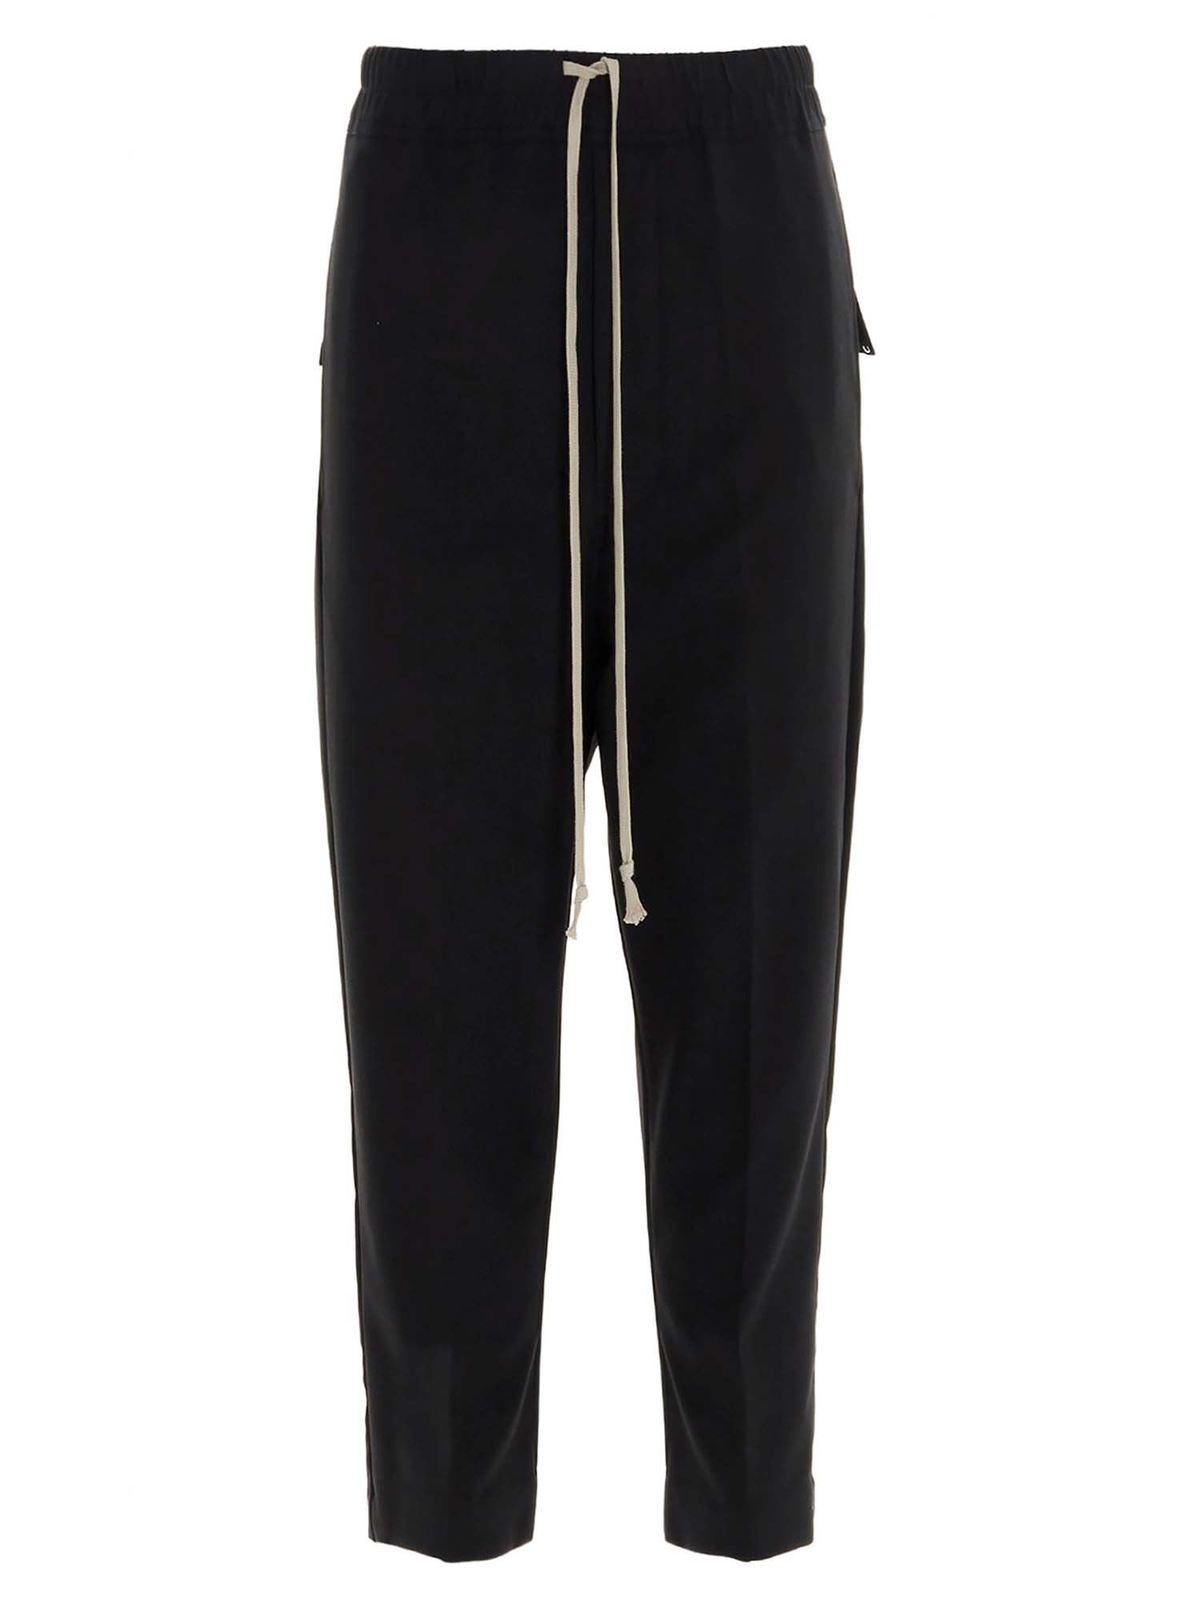 Rick Owens DRAWSTRING CROPPED ASTAIRES PANTS IN BLACK